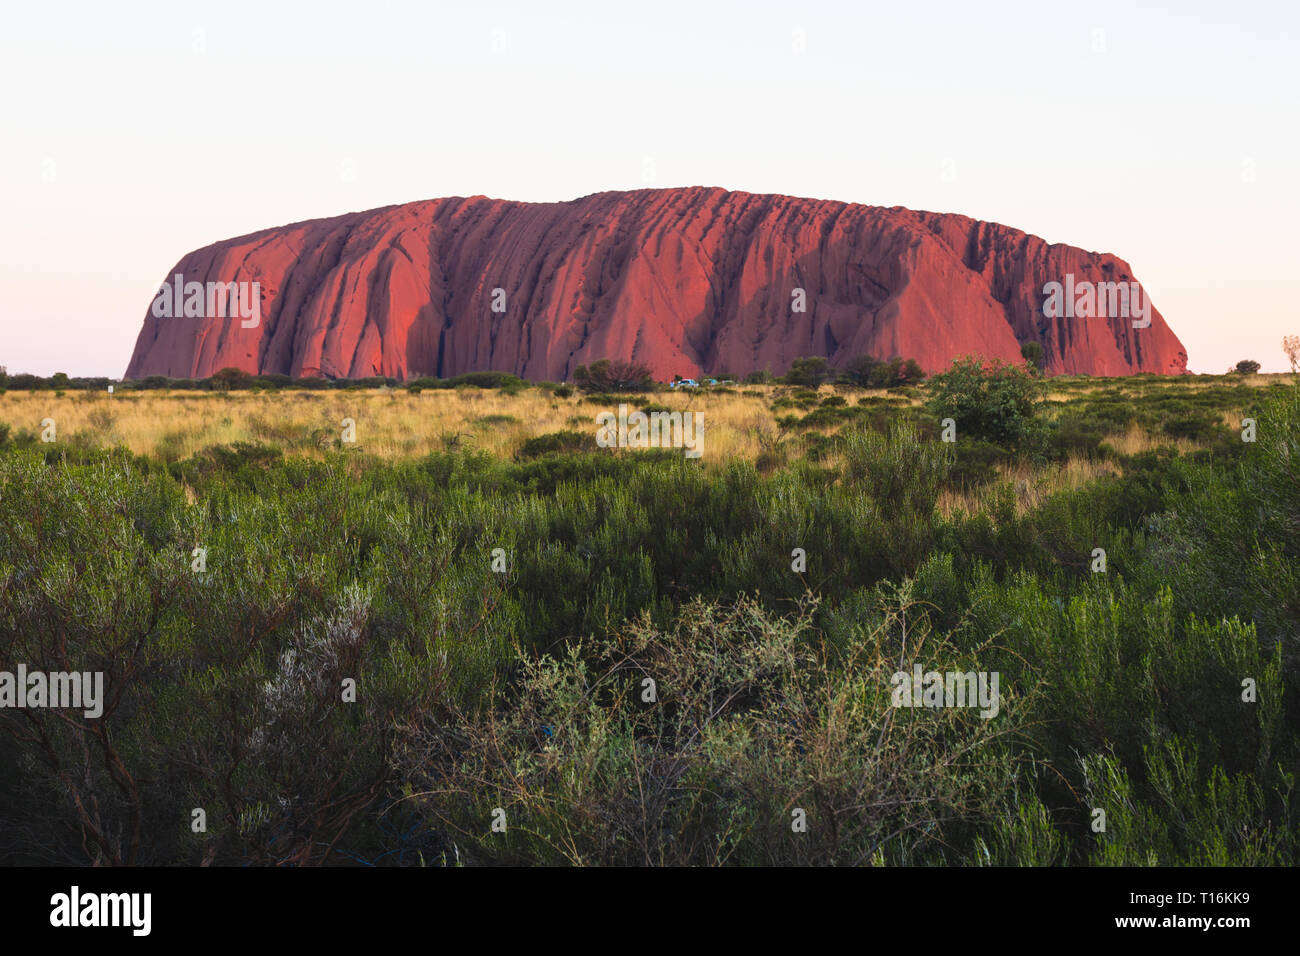 25th December 2018, Sydney NSW Australia : Scenic view of Uluru at sunset on summer day in NT outback Australia - Stock Image